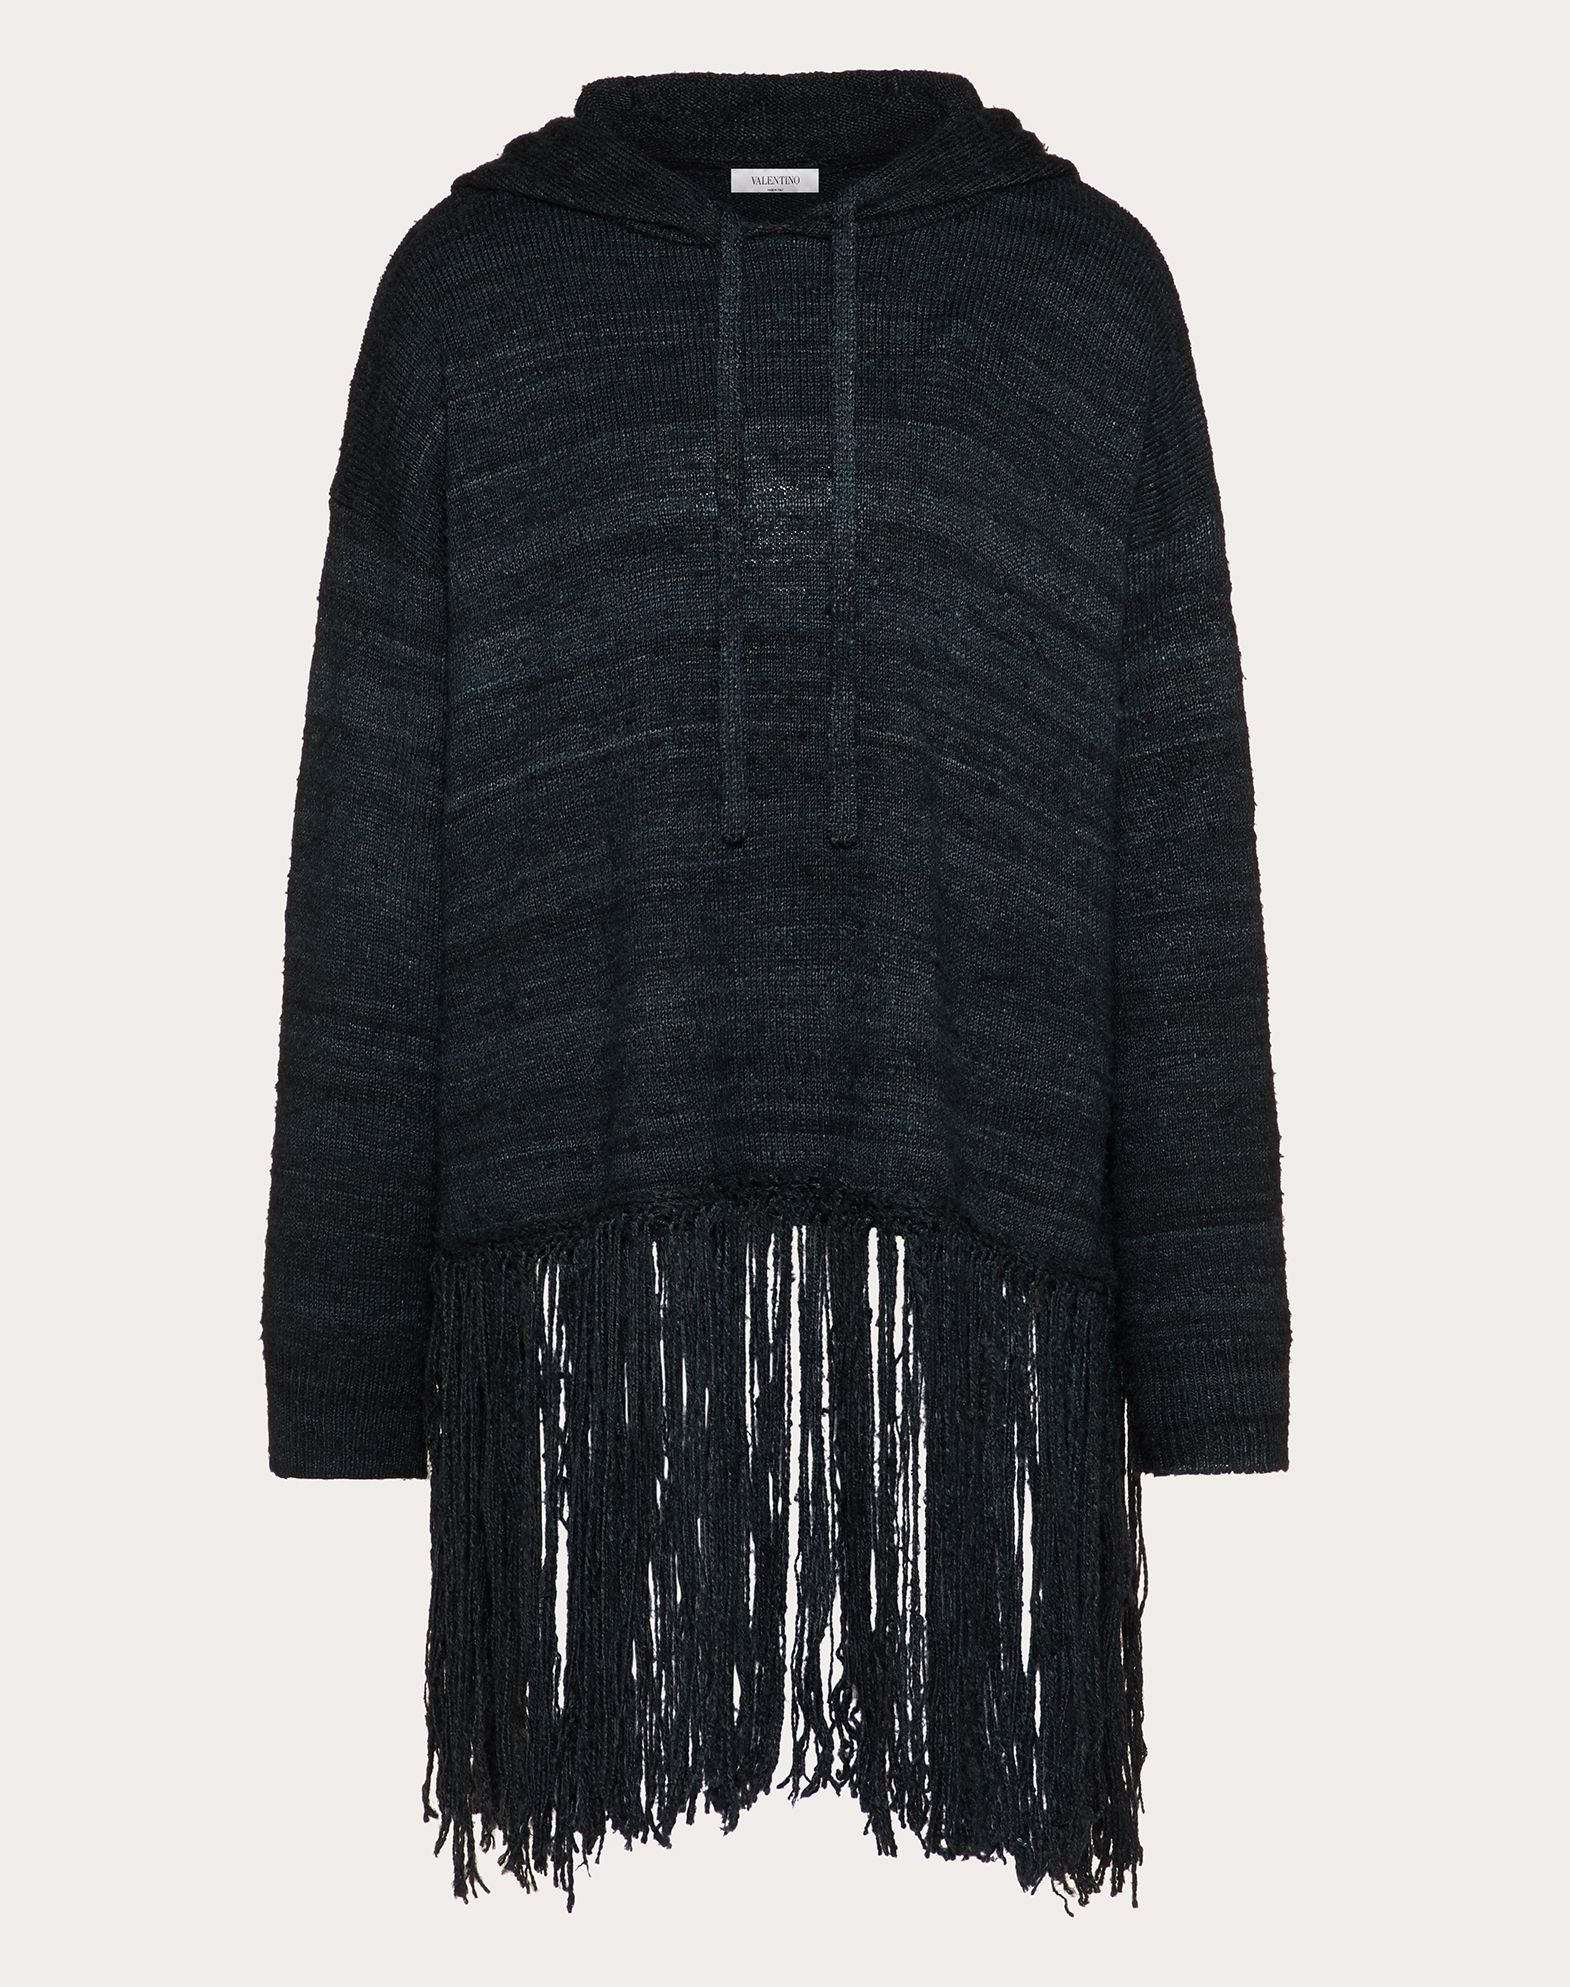 FRINGED SILK SWEATER